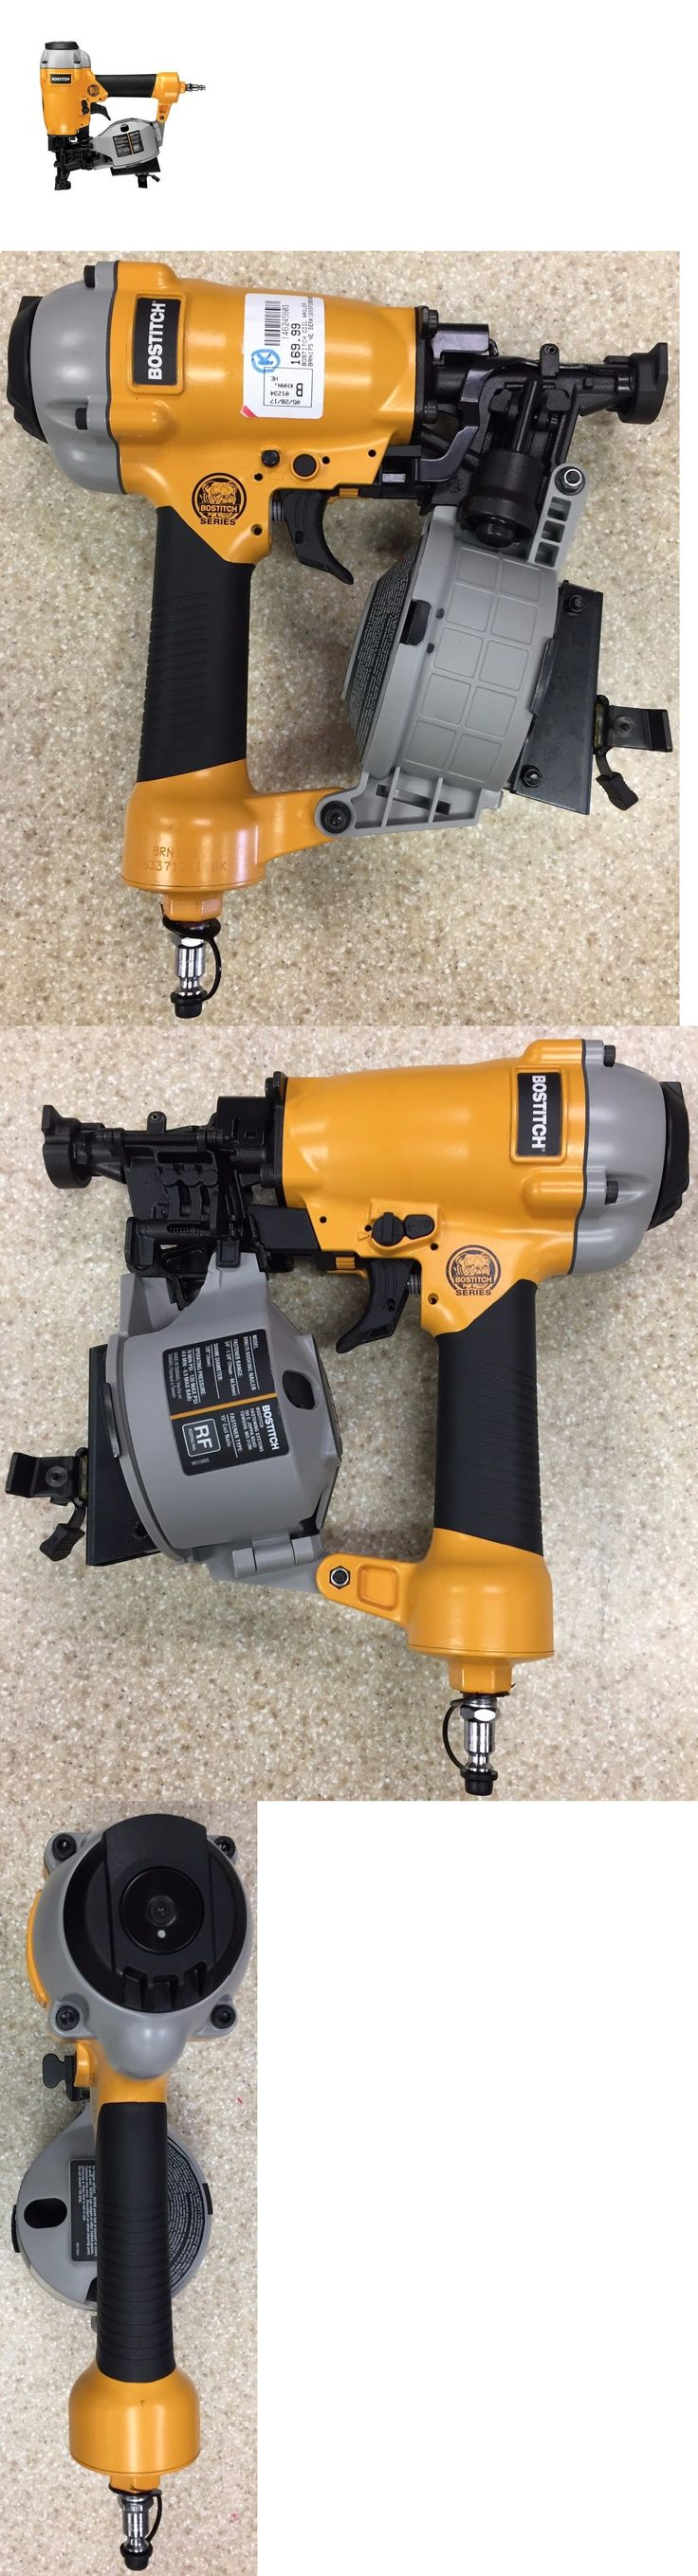 Roofing Guns 42243: **Brand New** Bostitch (Brn175) Bulldog 1-3 4 Pneumatic Coil Roofing Nailer -> BUY IT NOW ONLY: $169.99 on eBay!